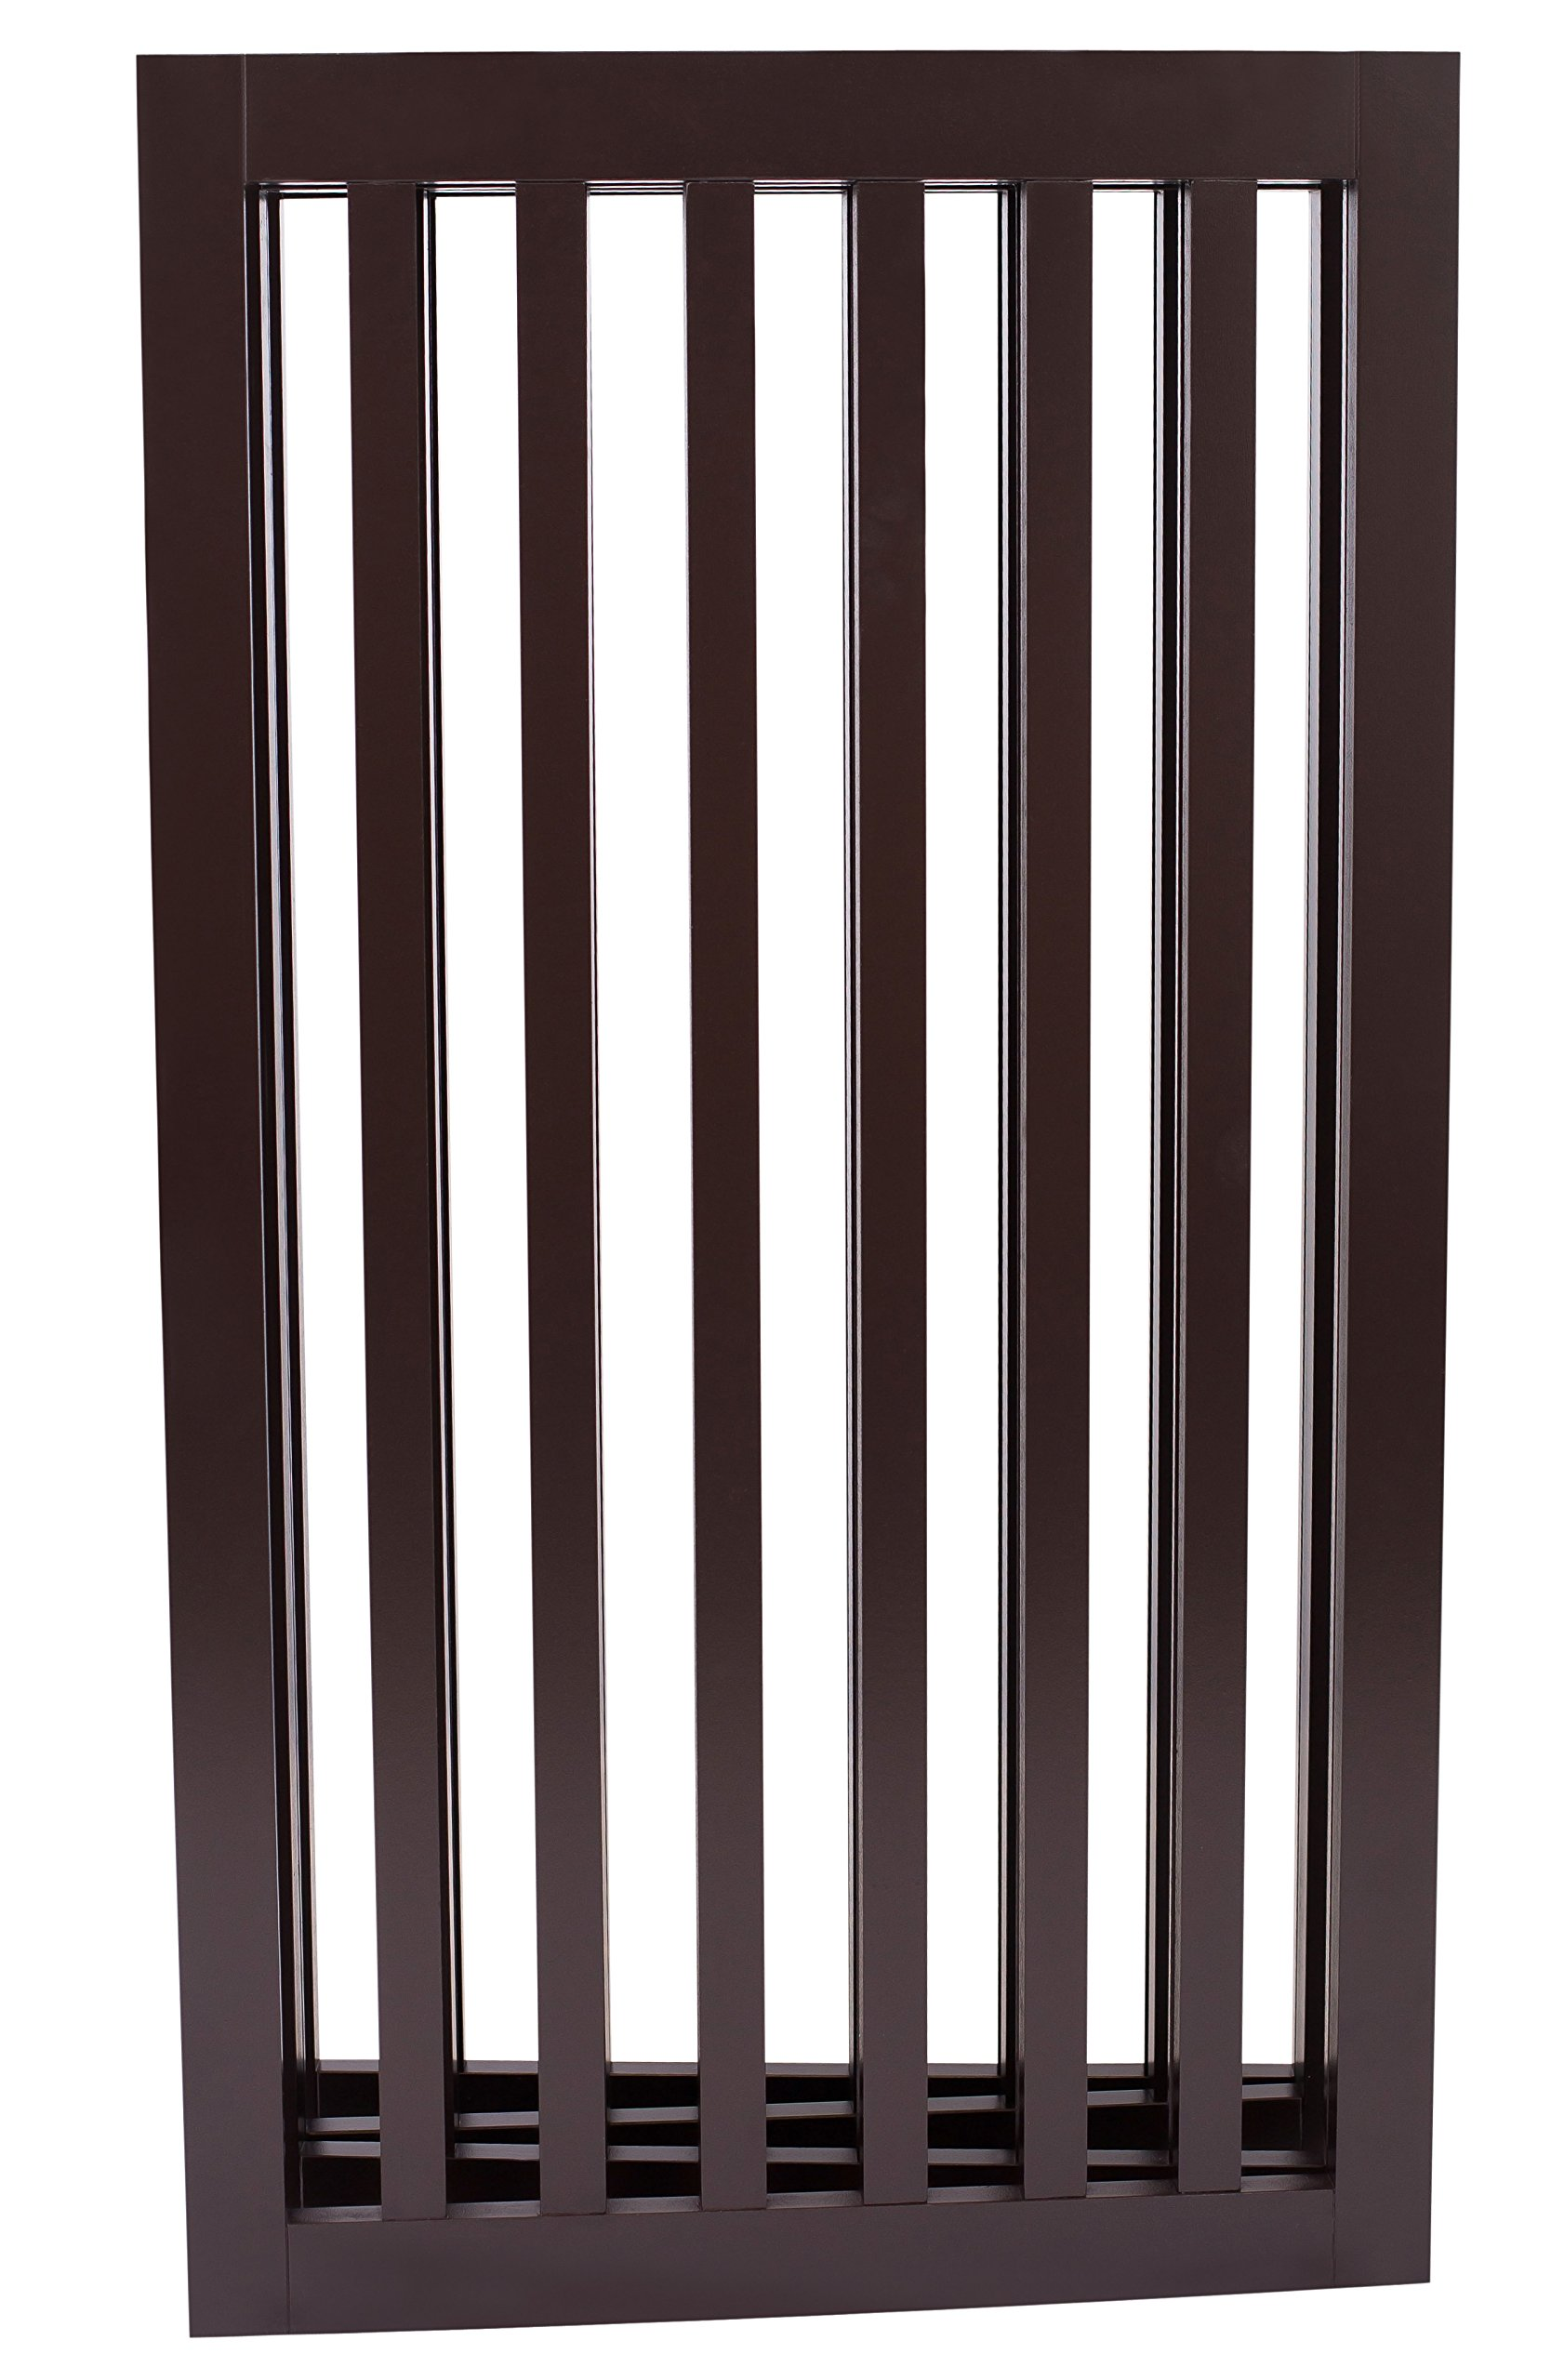 Internet's Best Traditional Pet Gate | 4 Panel | 36 Inch Tall Fence | Free Standing Folding Z Shape Indoor Doorway Hall Stairs Dog Puppy Gate | Fully Assembled | Espresso | Wooden by Internet's Best (Image #3)